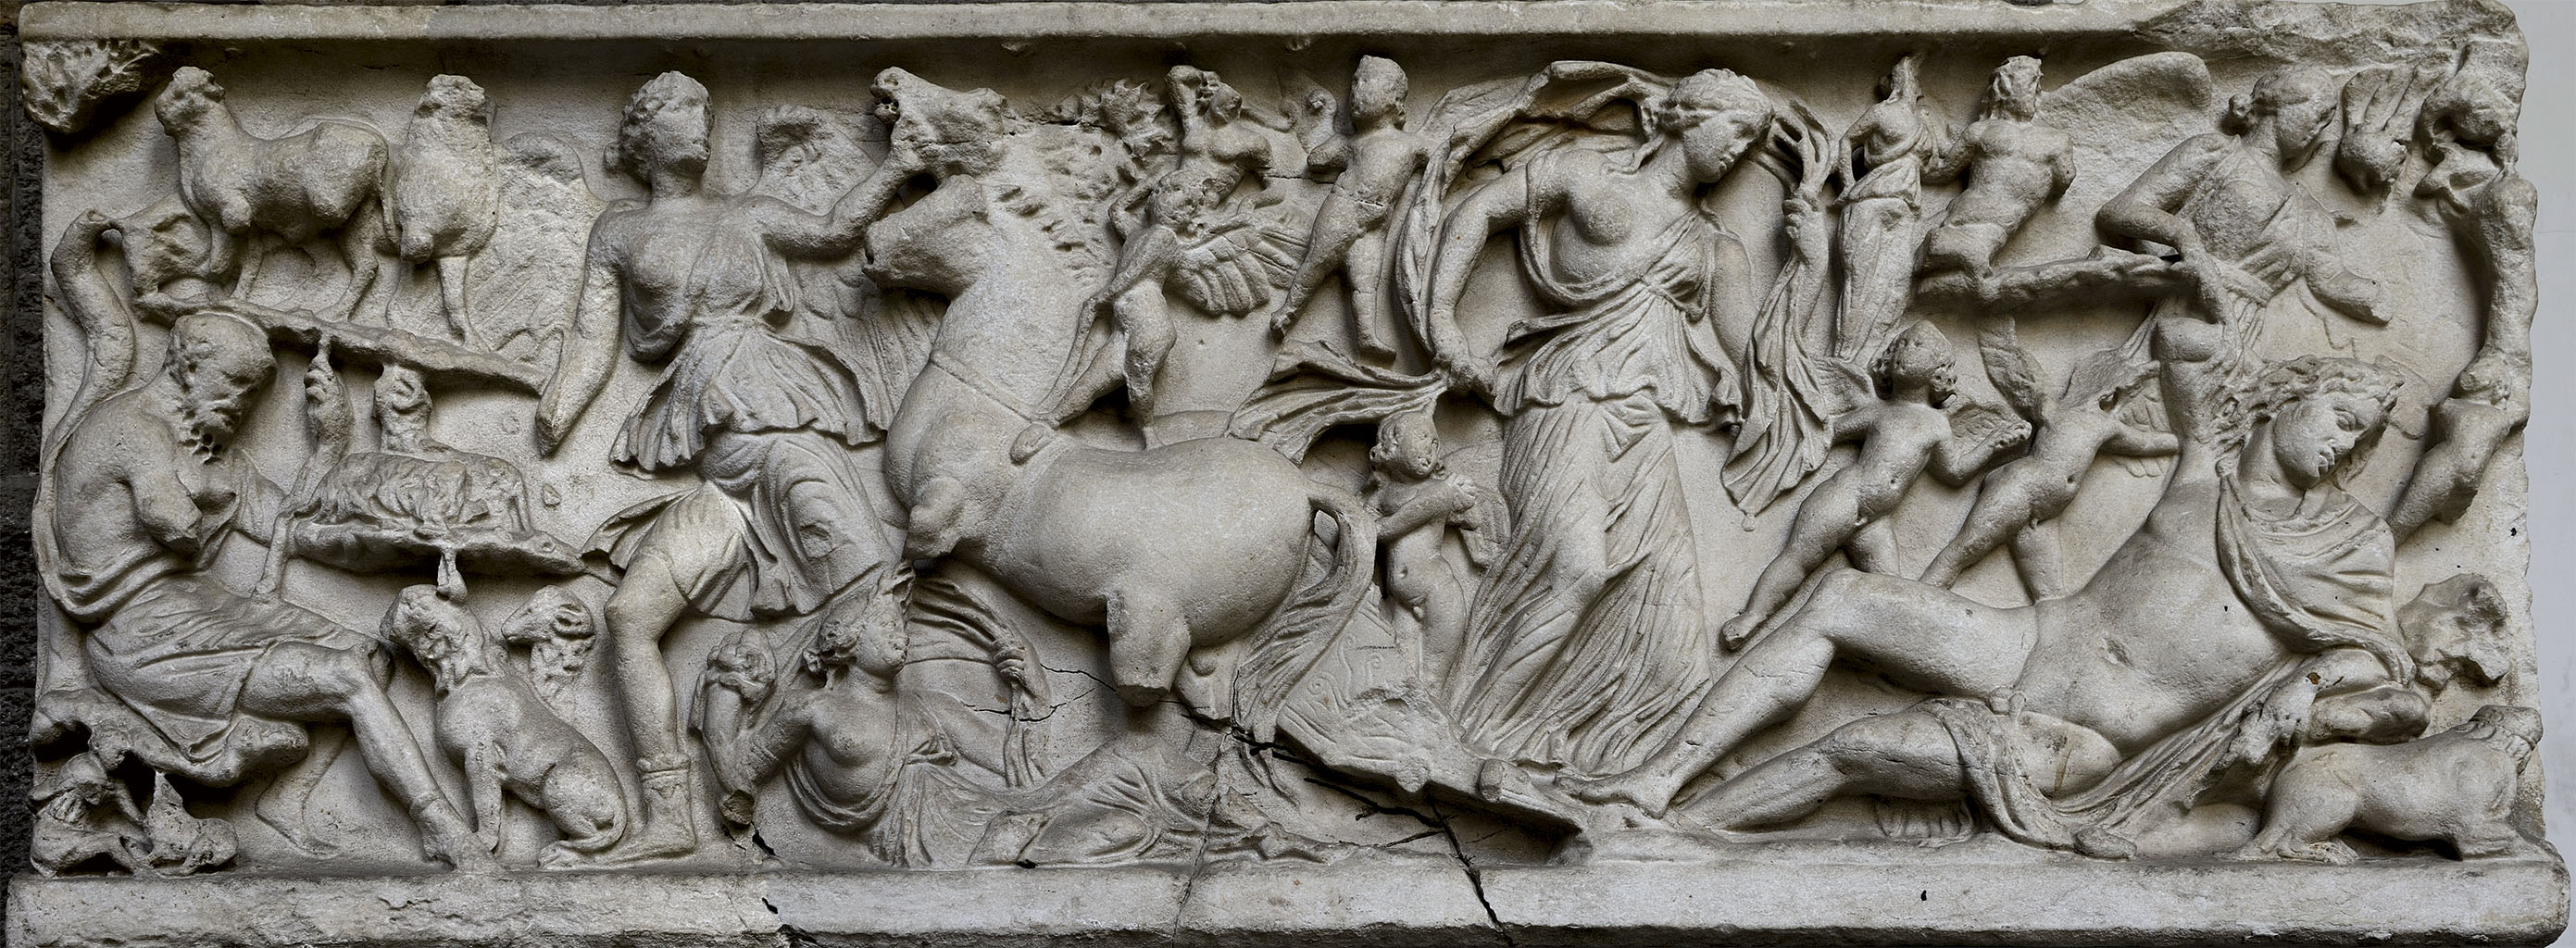 Sarcophagus with a myth of Selene and Endymion. Marble. Mid-2nd century CE.  Inv. No. 111070. Naples, National Archaeological Museum